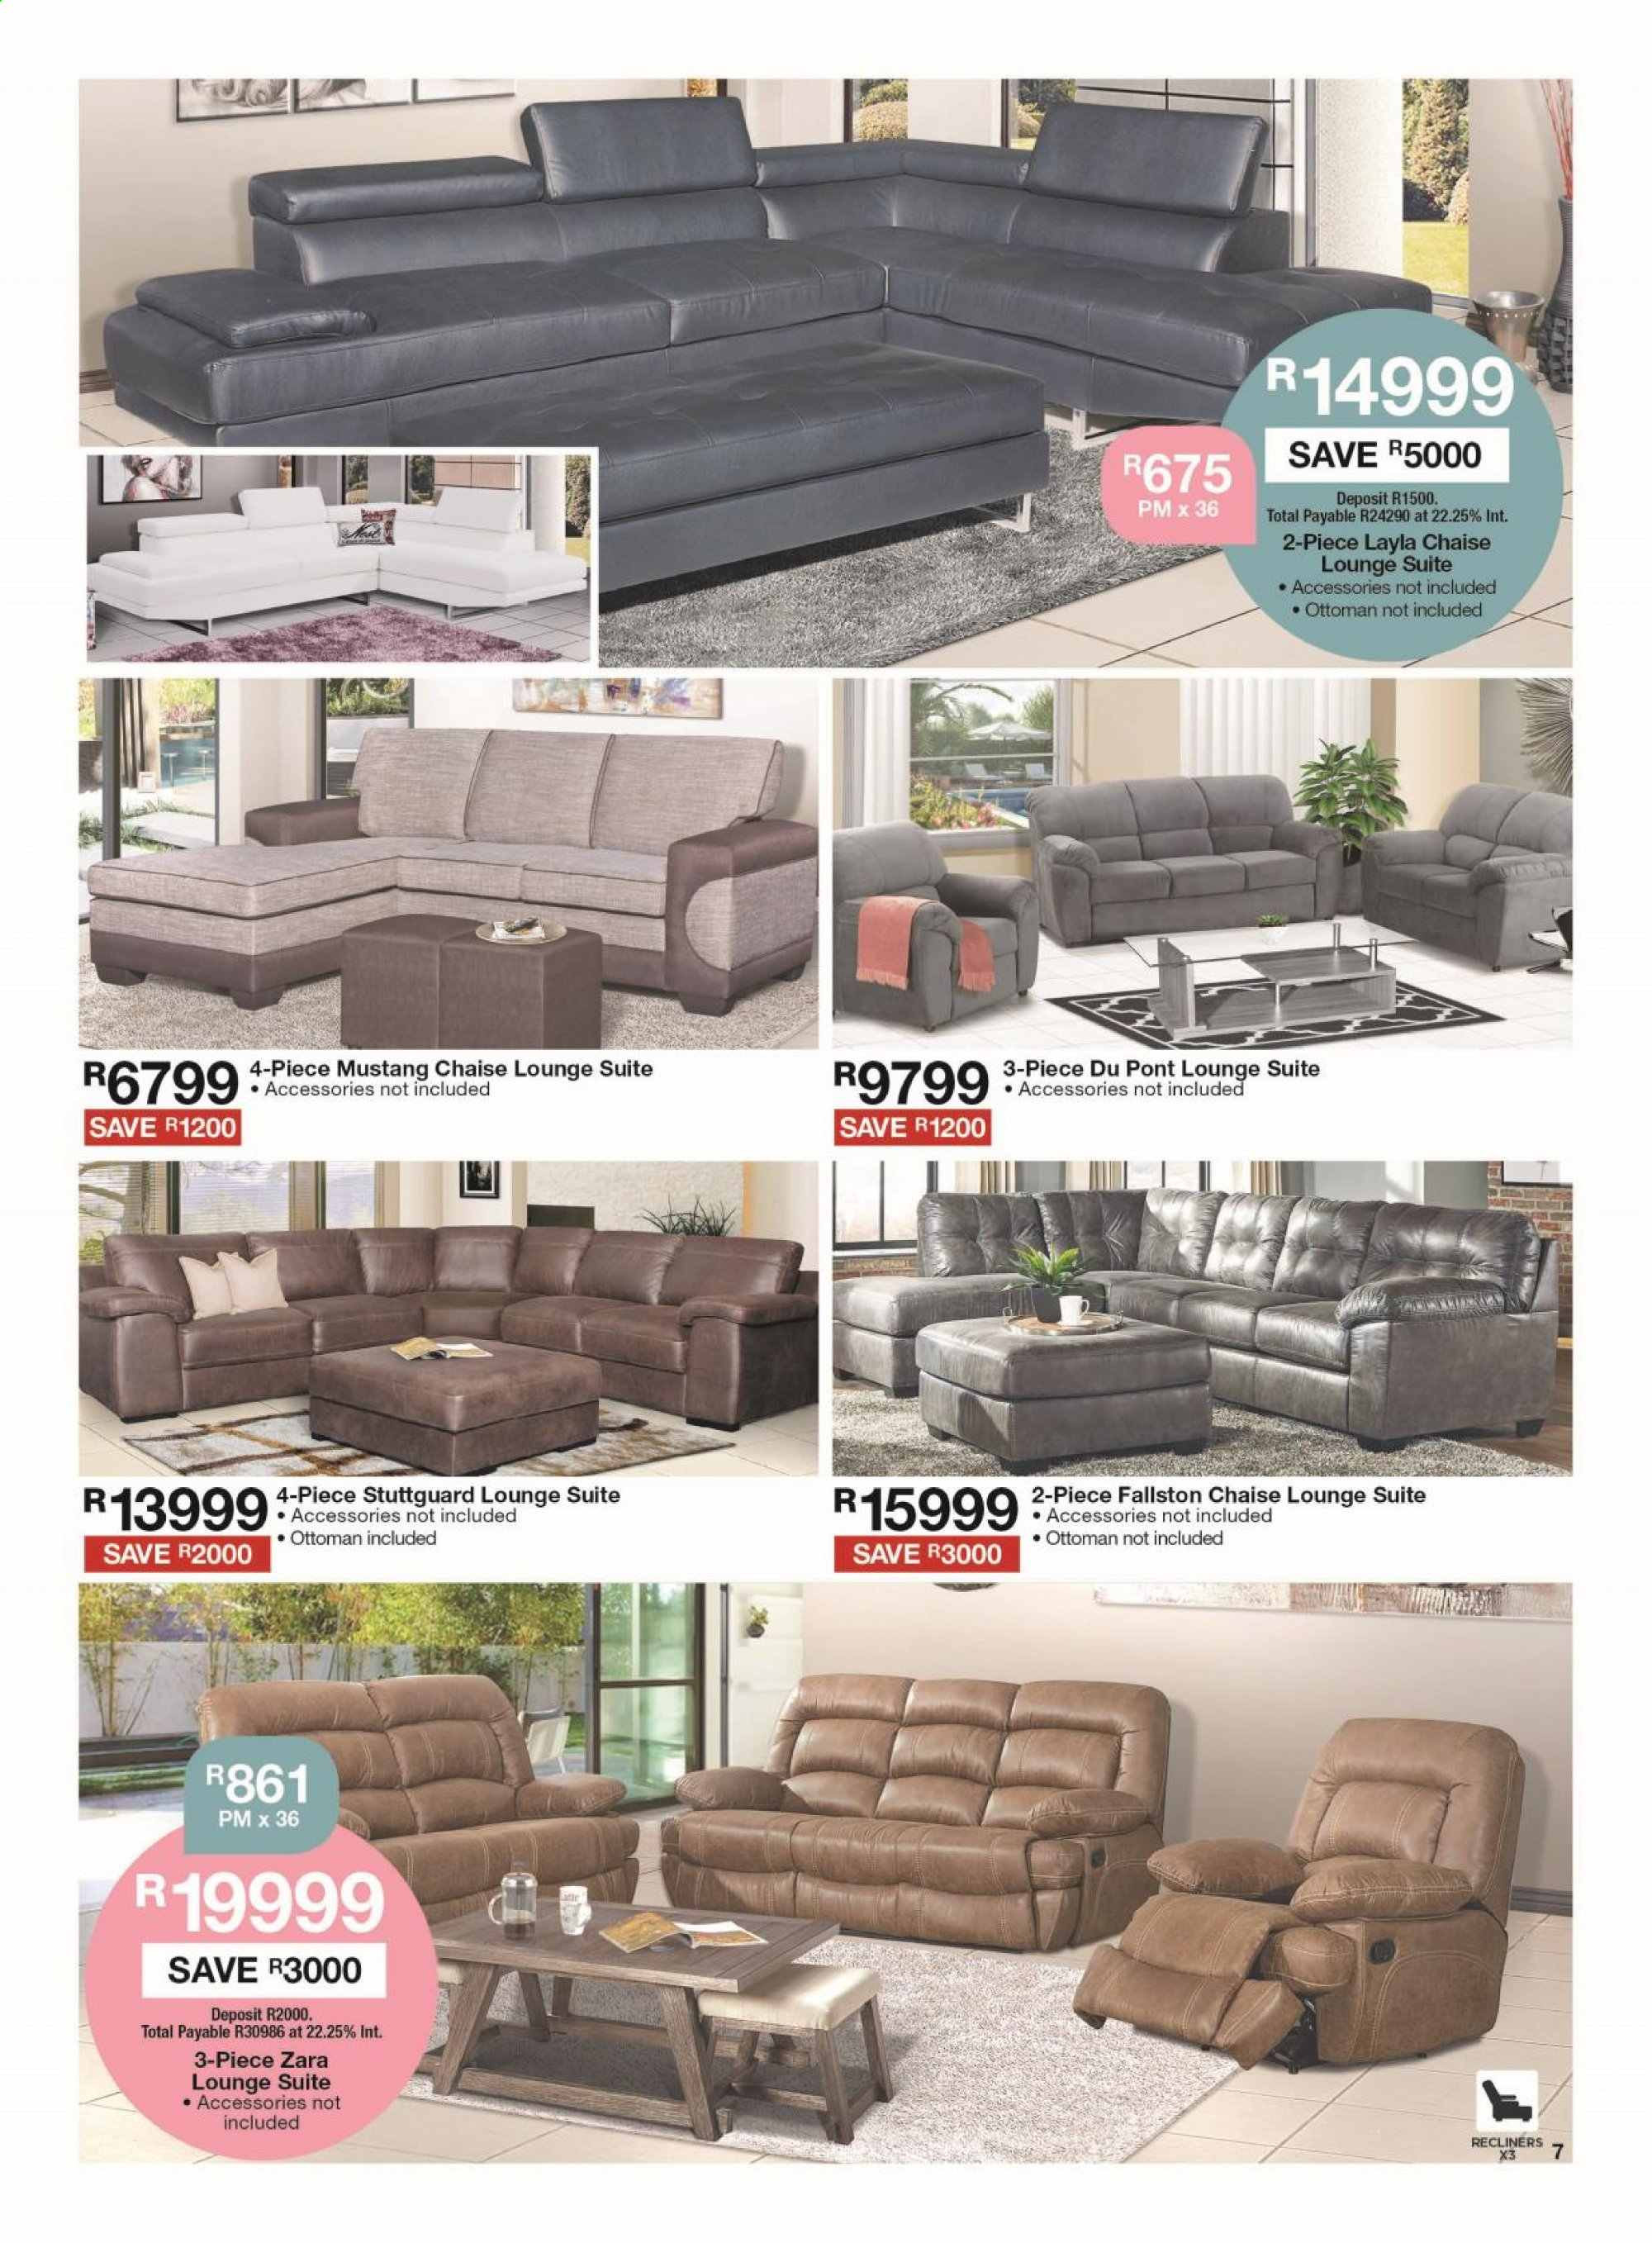 House & Home catalogue  - 03.06.2020 - 03.15.2020. Page 5.